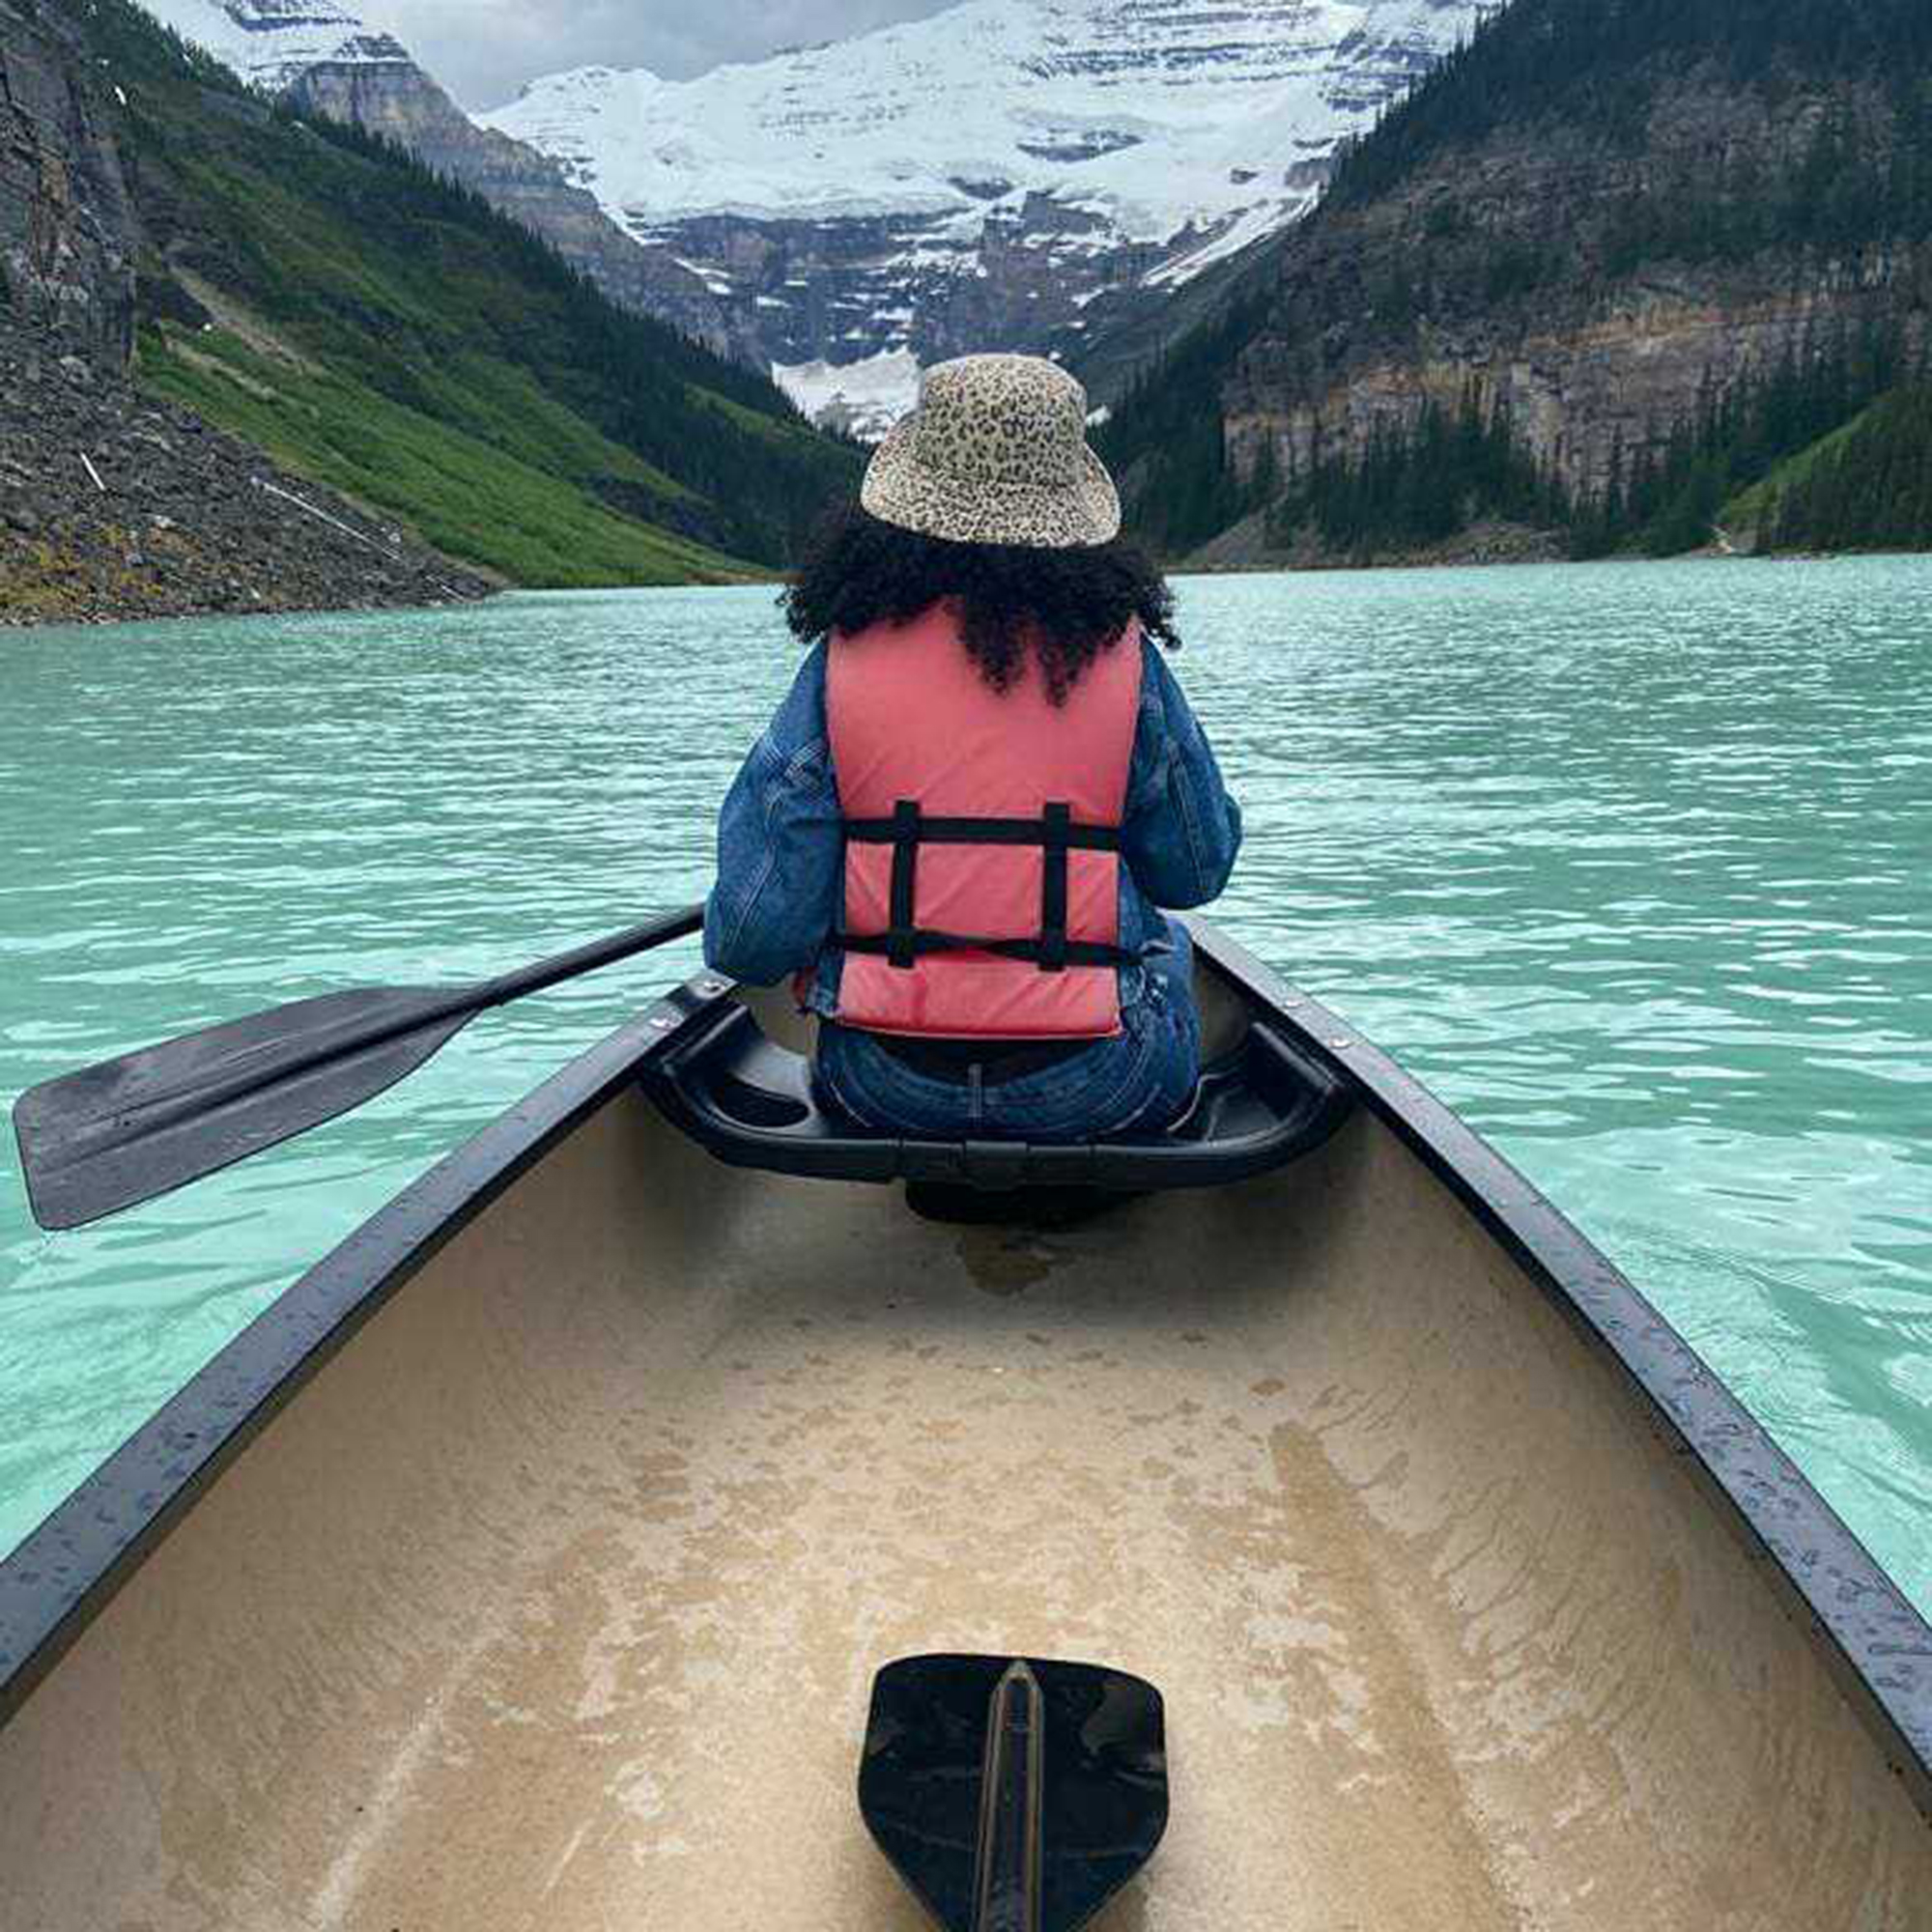 Firdous sitting in a canoe looking out at the lake and mountains.